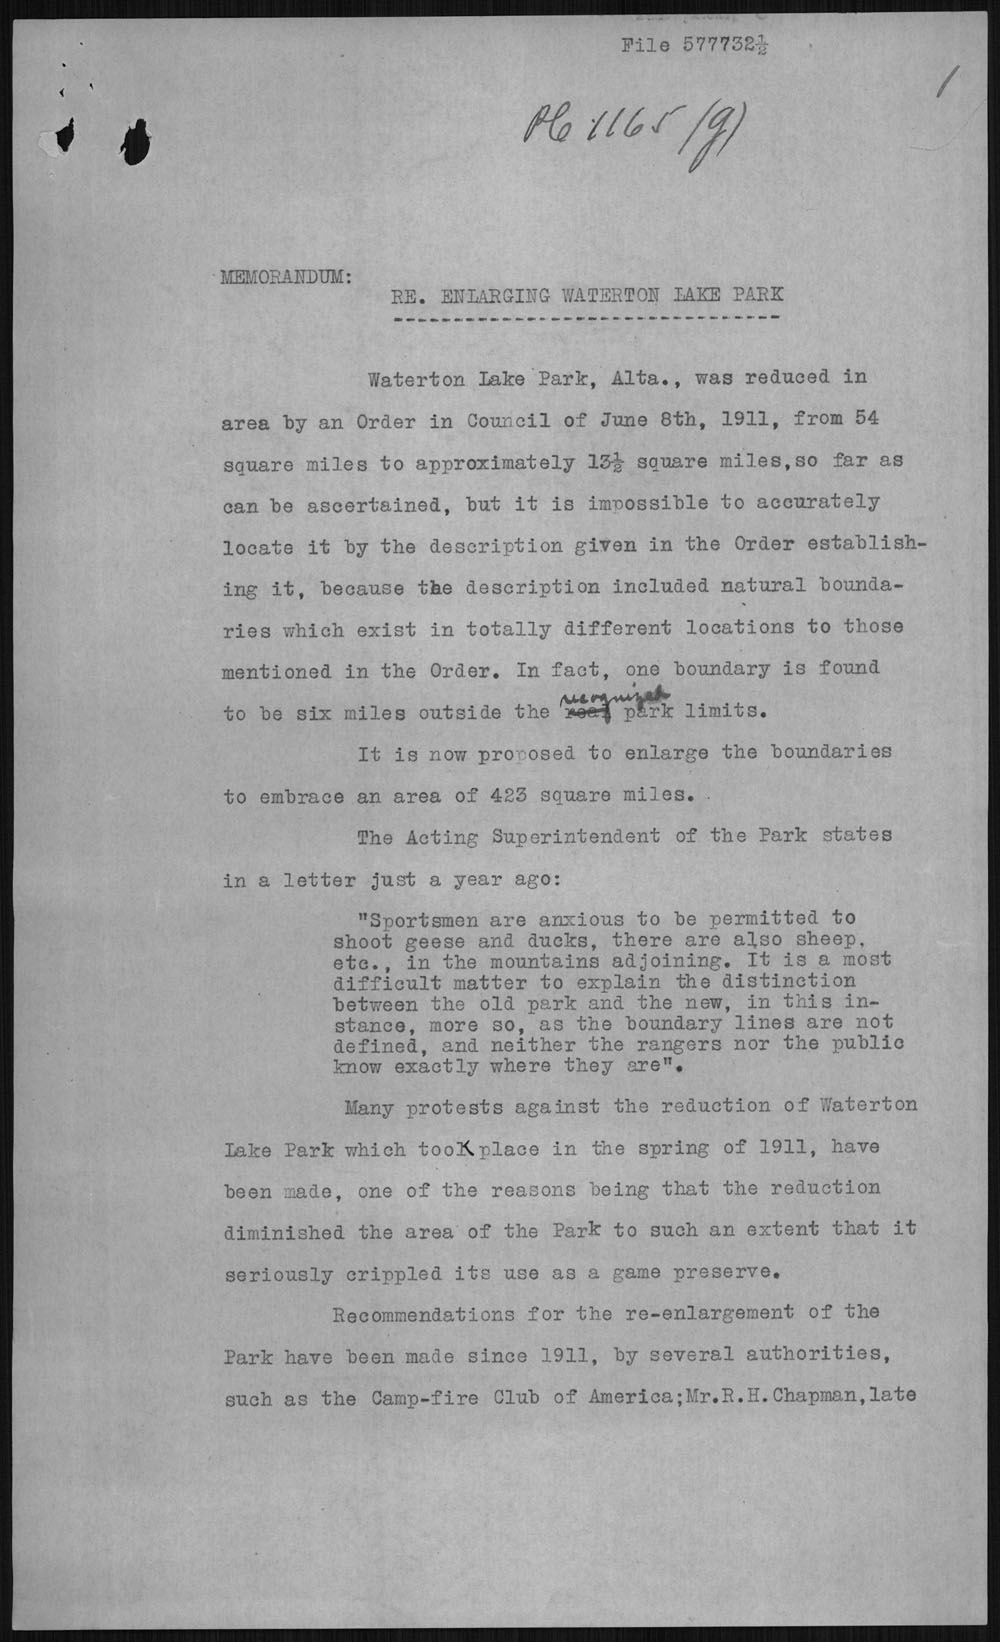 Digitized page of Orders in Council for Image No.: e010877254-v8